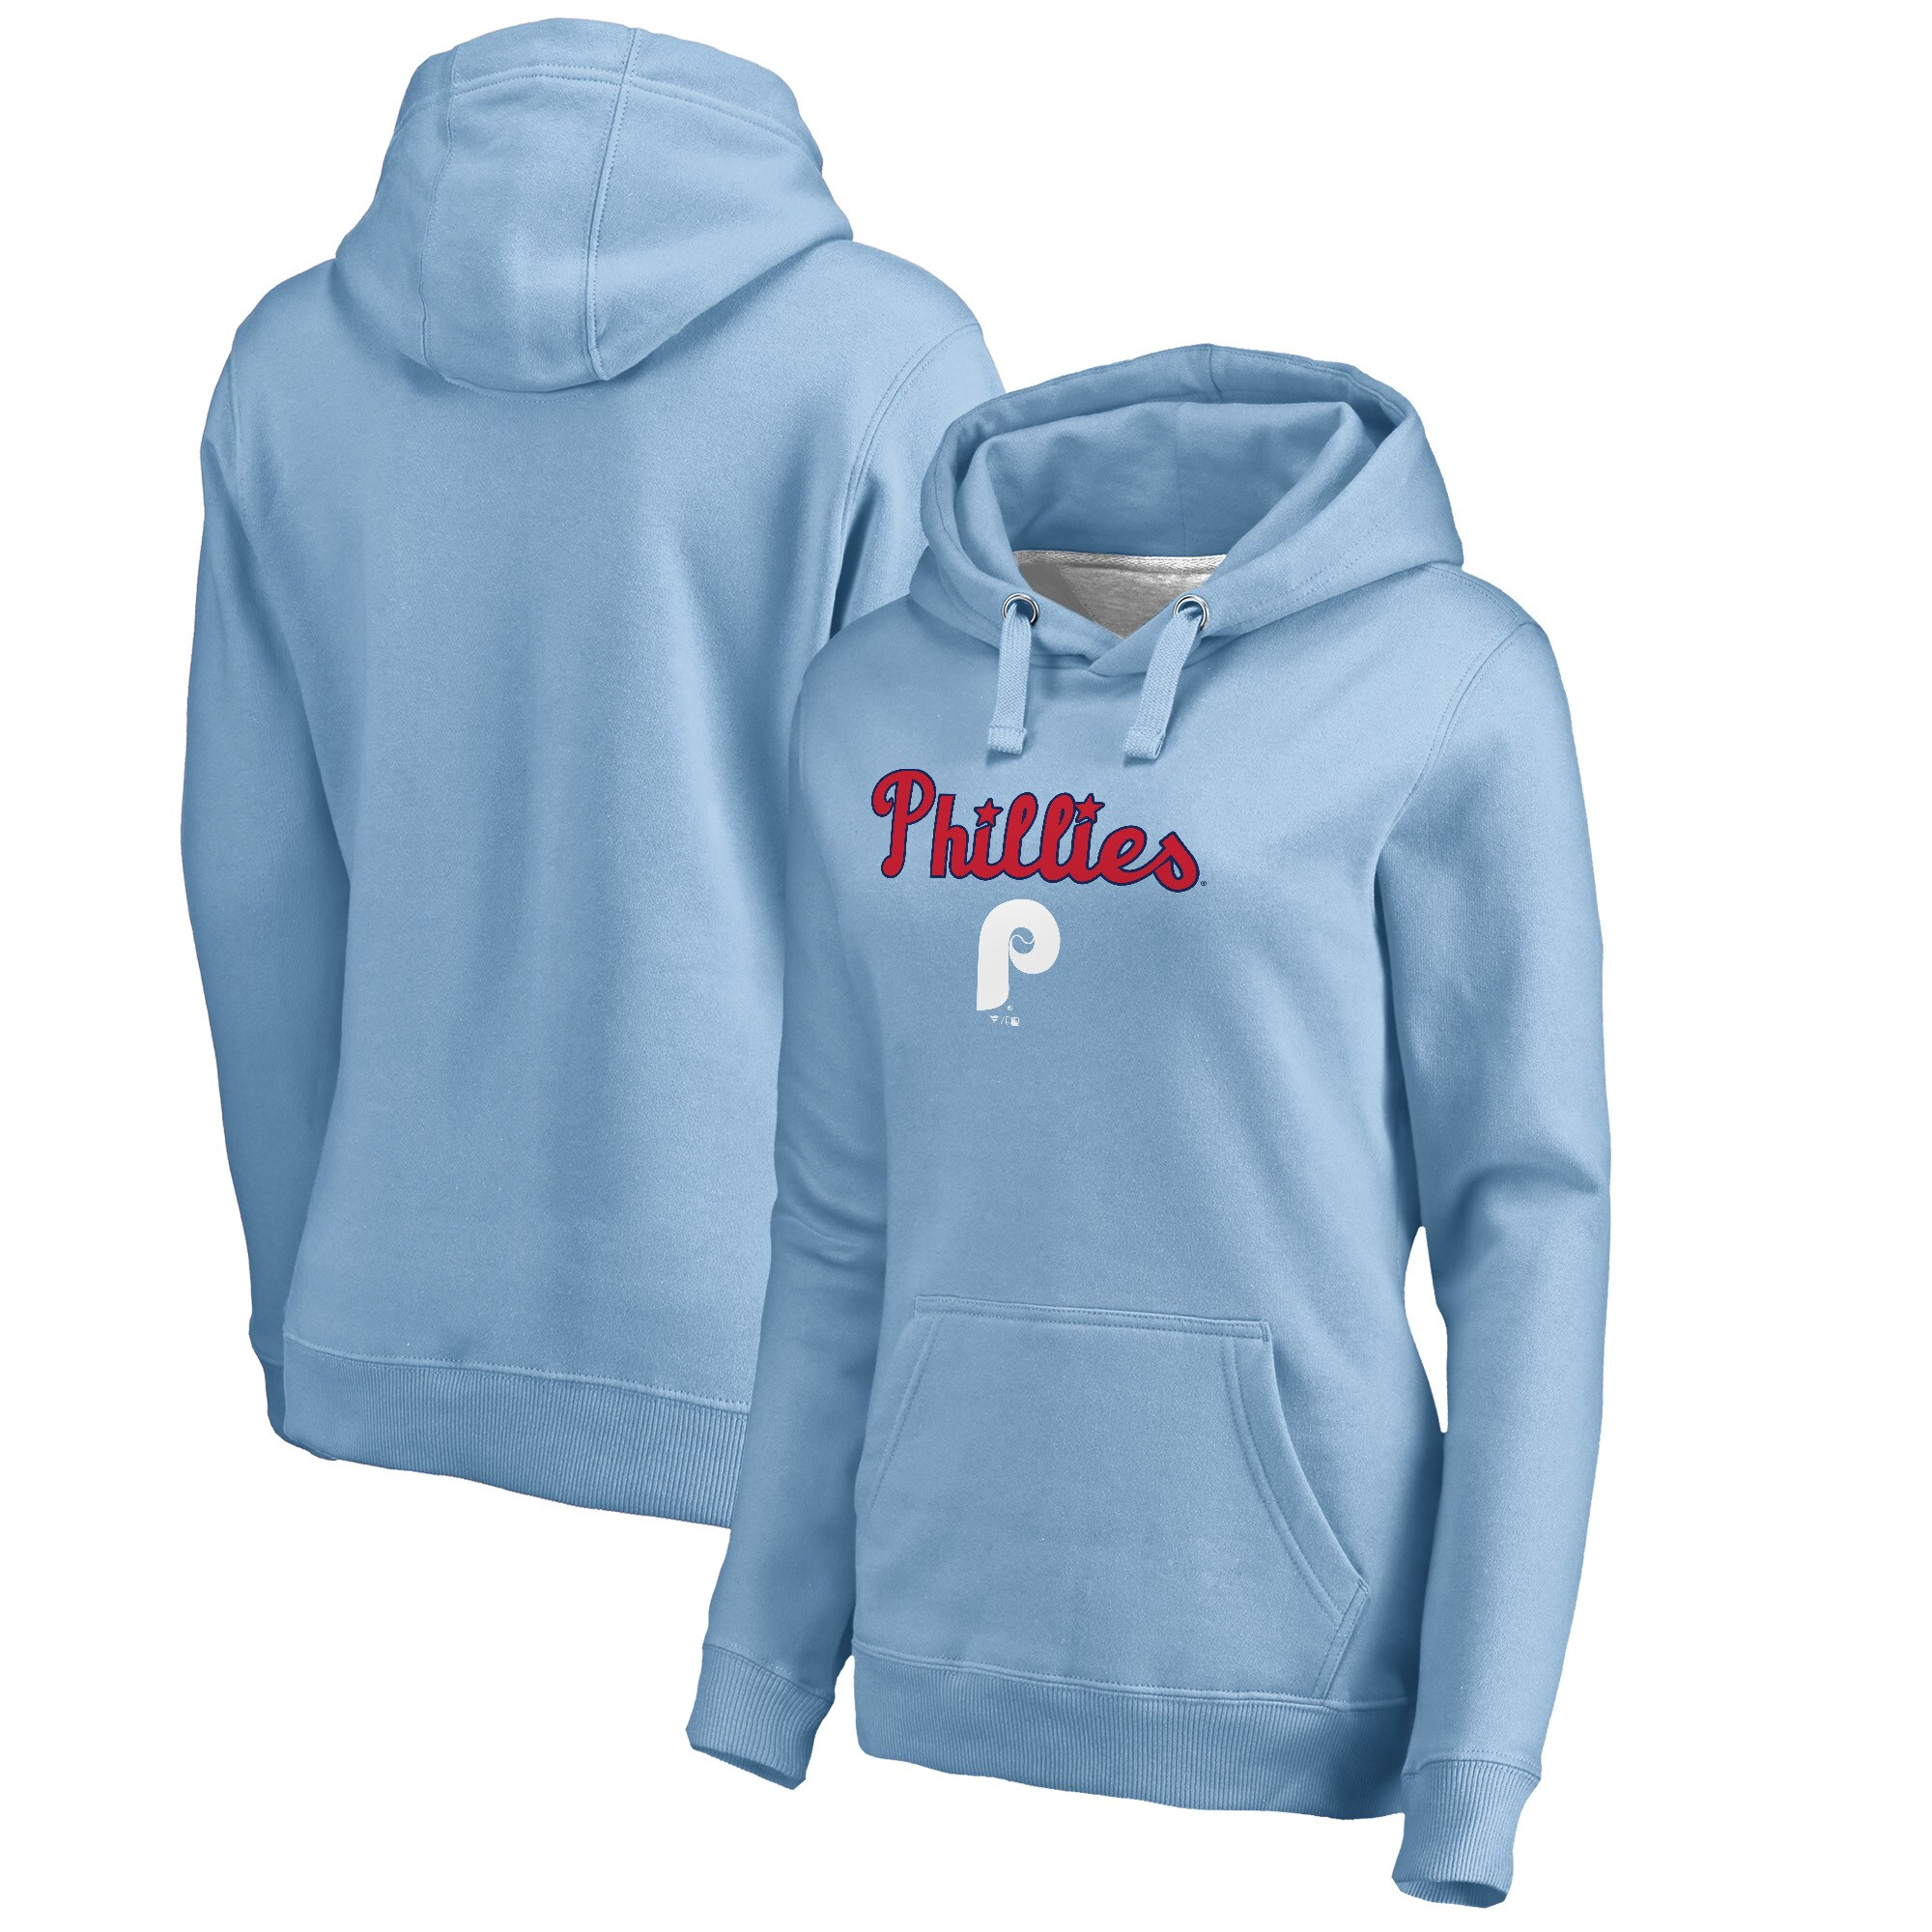 Philadelphia Phillies Fanatics Branded Women's Cooperstown Collection Wahconah Pullover Hoodie - Light Blue